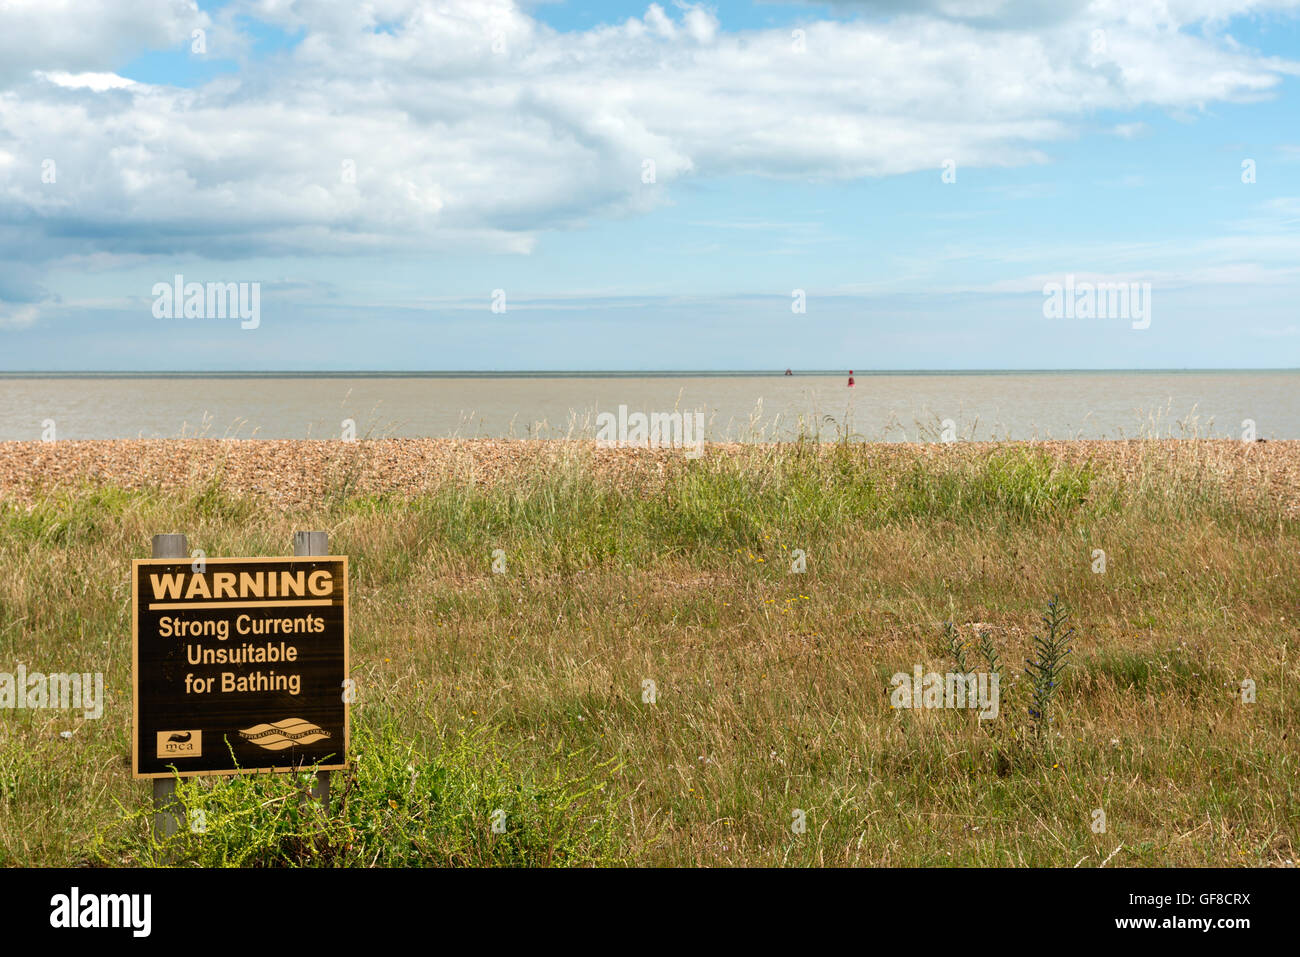 Strong Currents unsuitable for bathing warning sign, Shingle Street, Suffolk, UK. - Stock Image